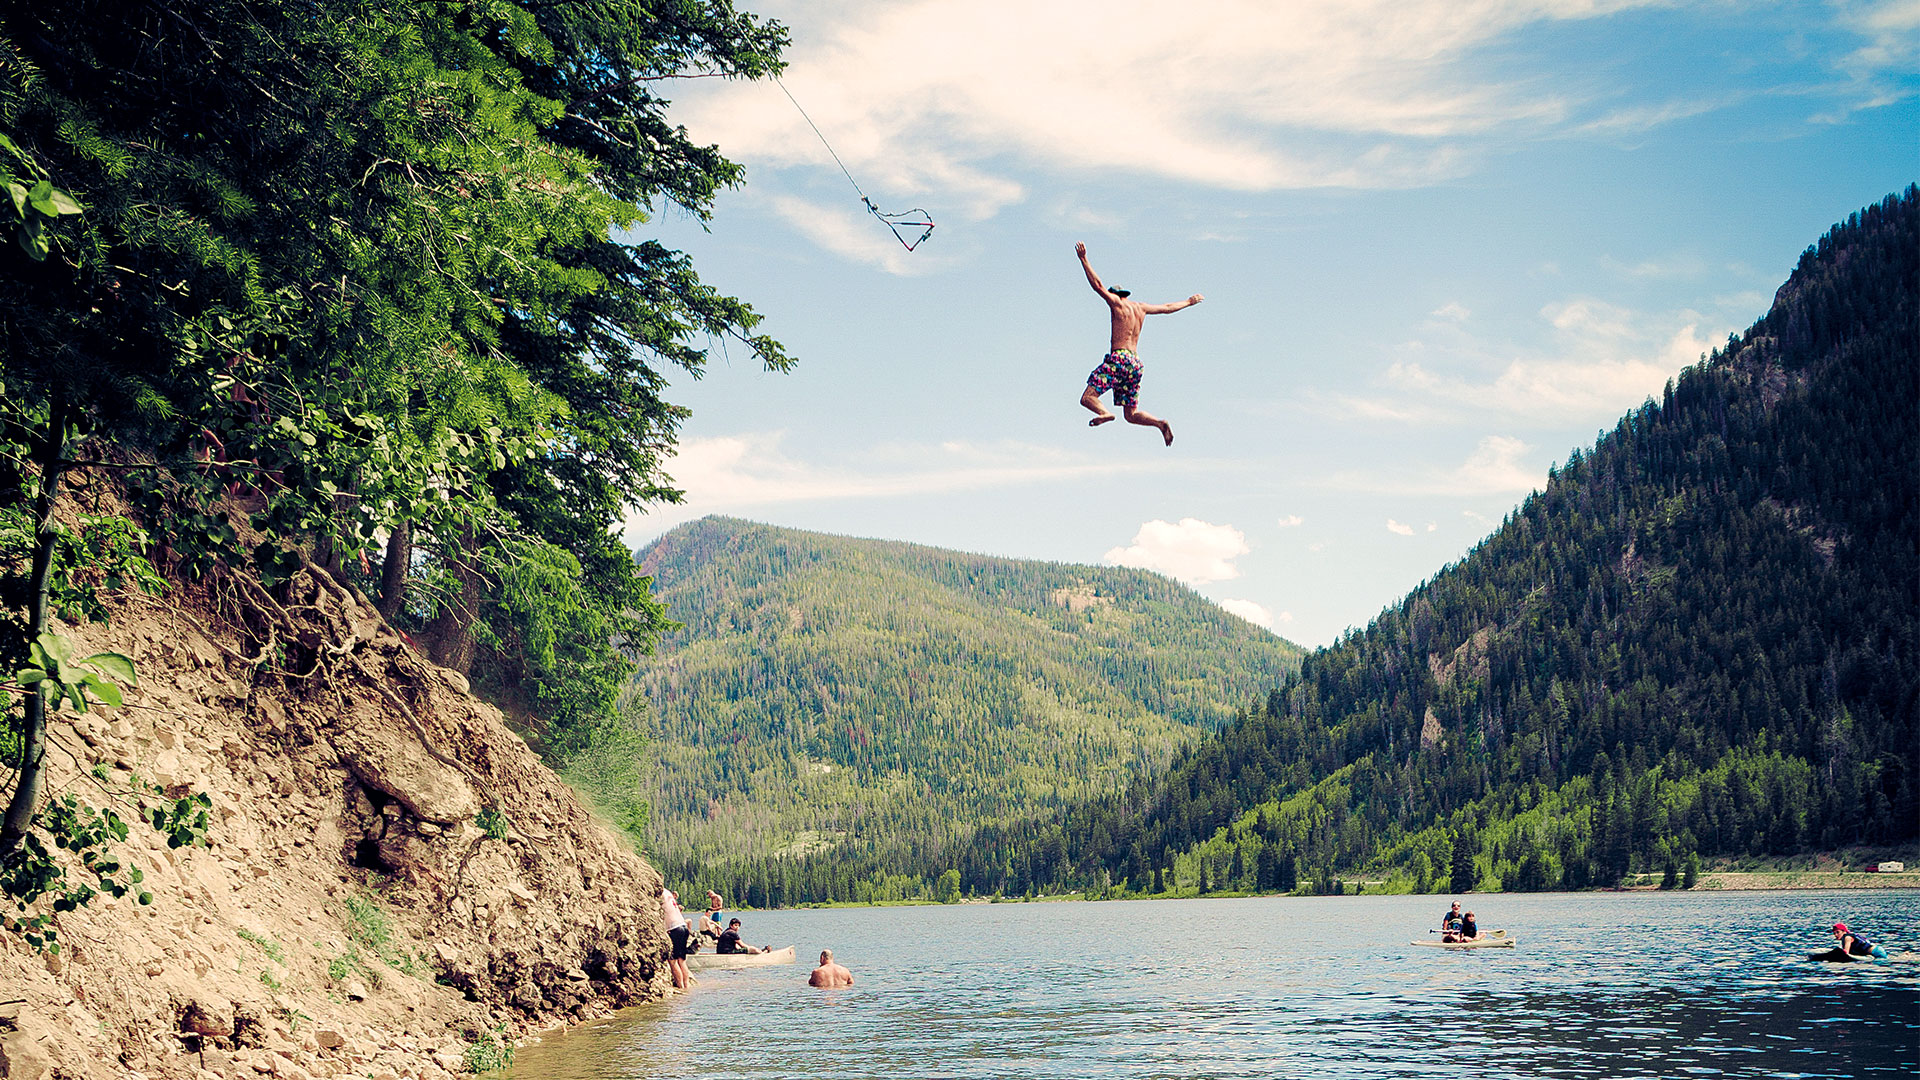 How to Have the Ultimate Summer Lake Escape